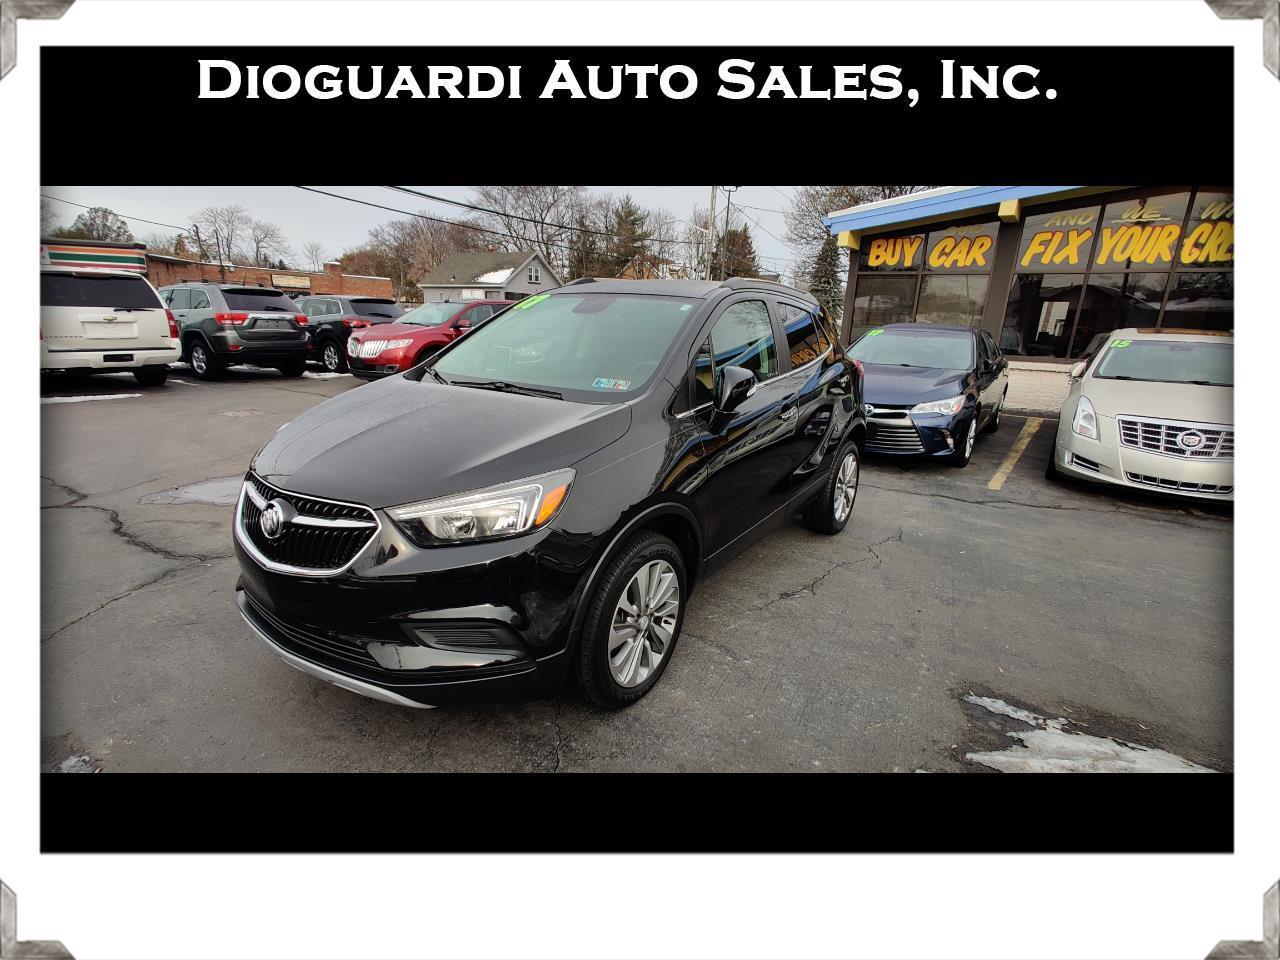 Cars For Sale Rochester Ny >> Used Cars For Sale Rochester Ny 14609 Dioguardi Auto Sales Inc